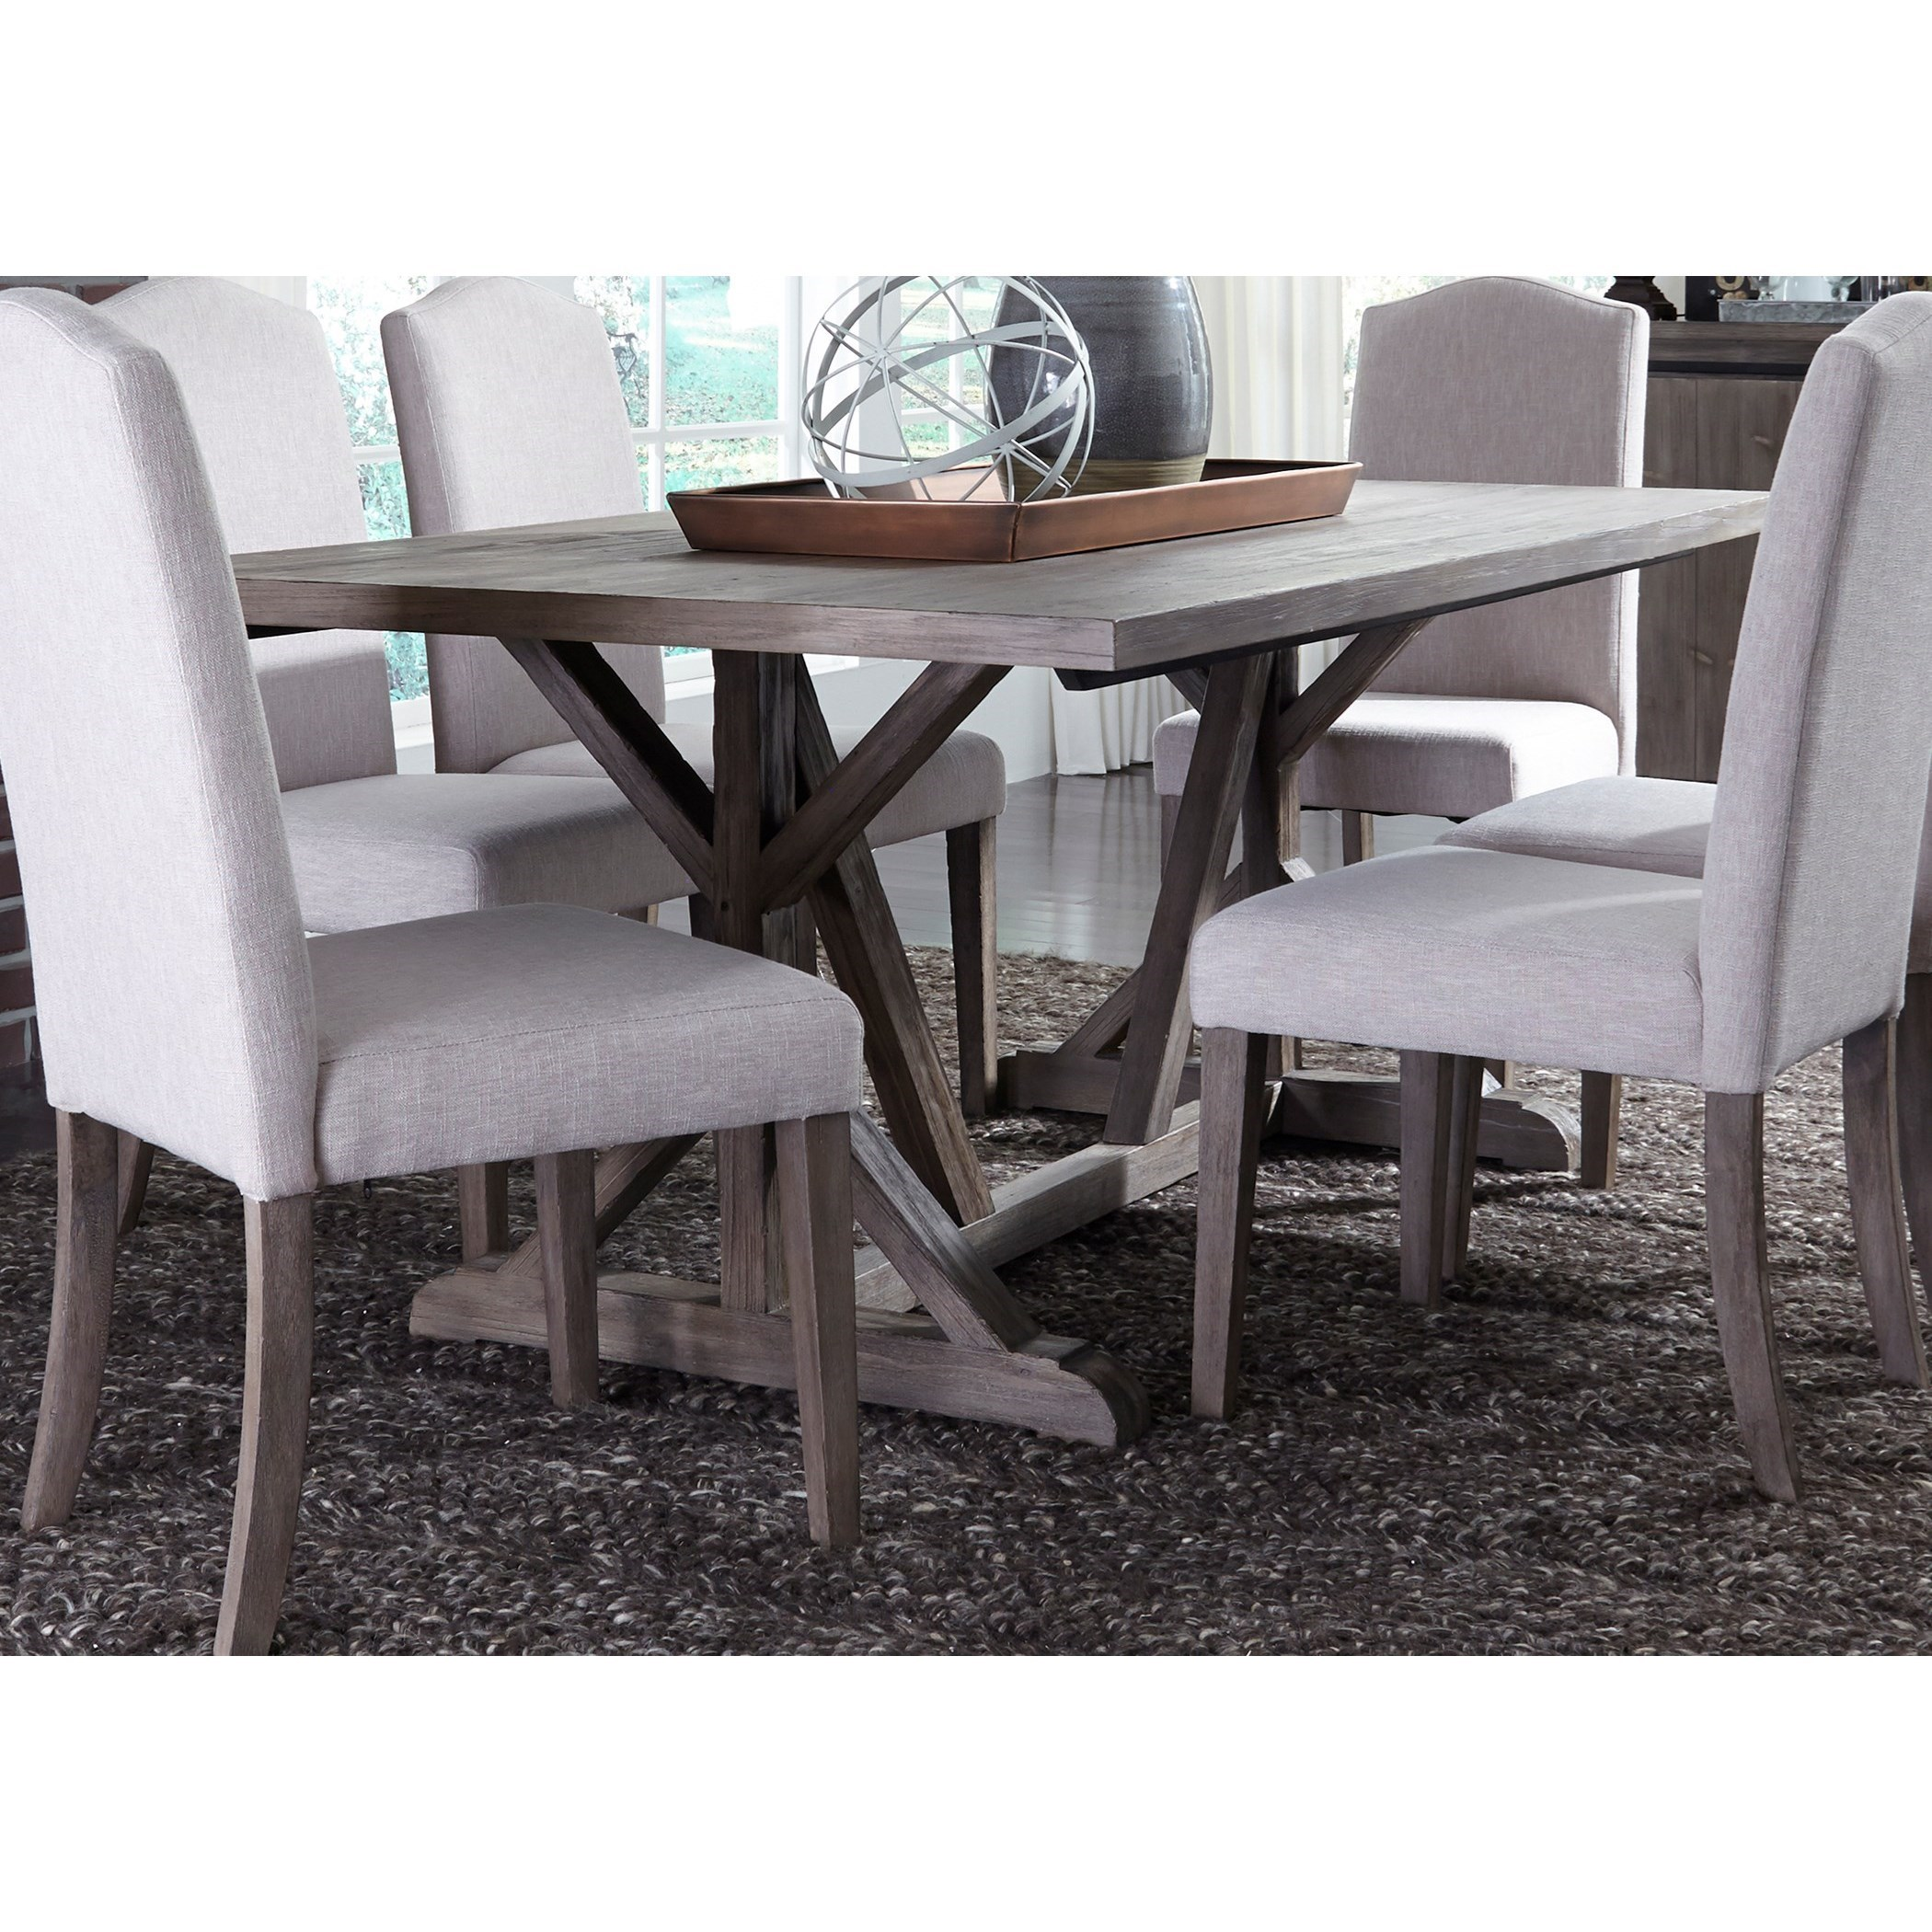 Trestle Table with Weathered Gray Finish